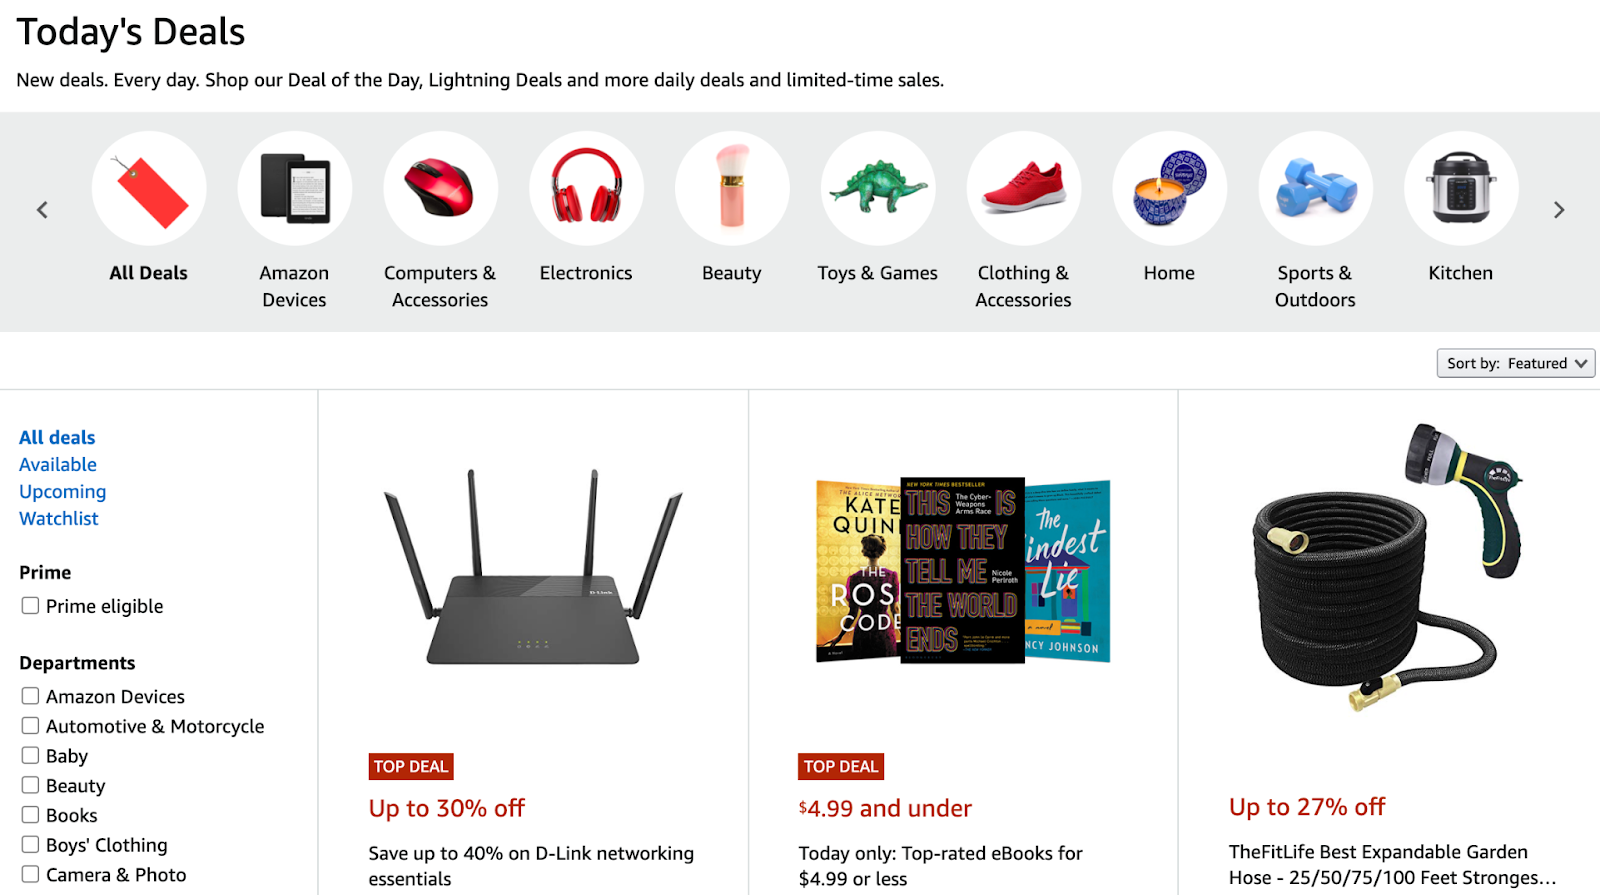 Shopping page with varieties of product deals.